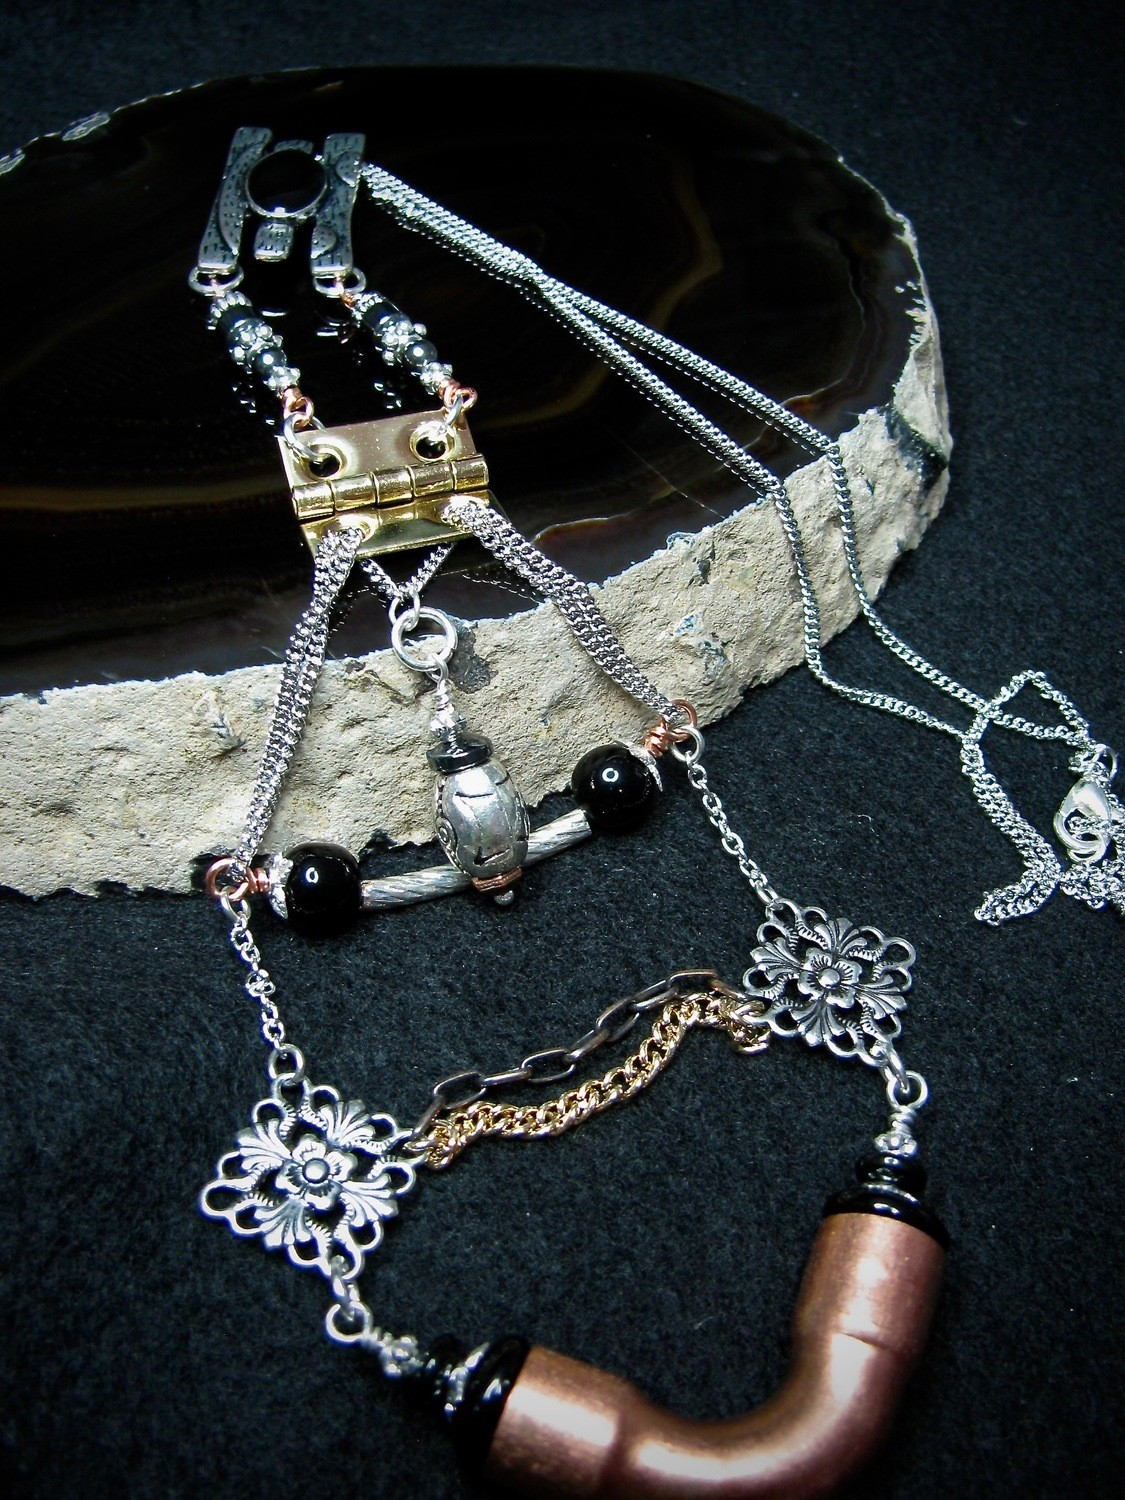 Pipe and Hinge Hardware Necklace